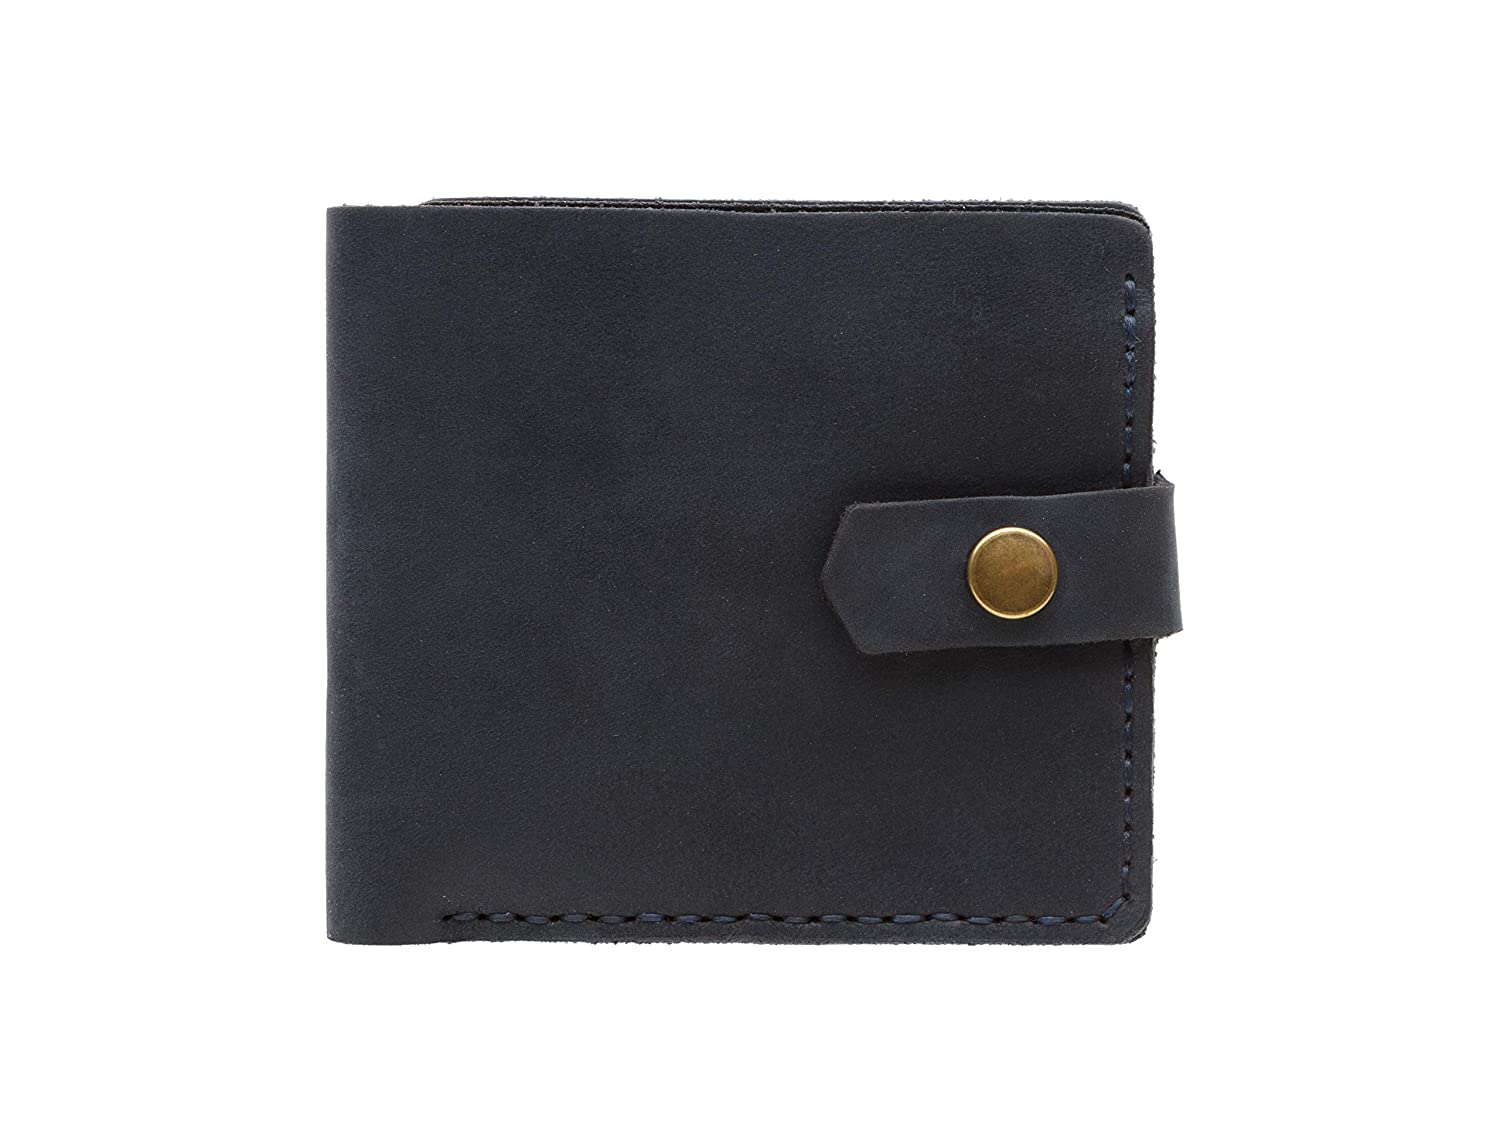 Cantoneri Bifold Womens Leather Wallet Full Grain Crazy Horse Leather 6 Compartments